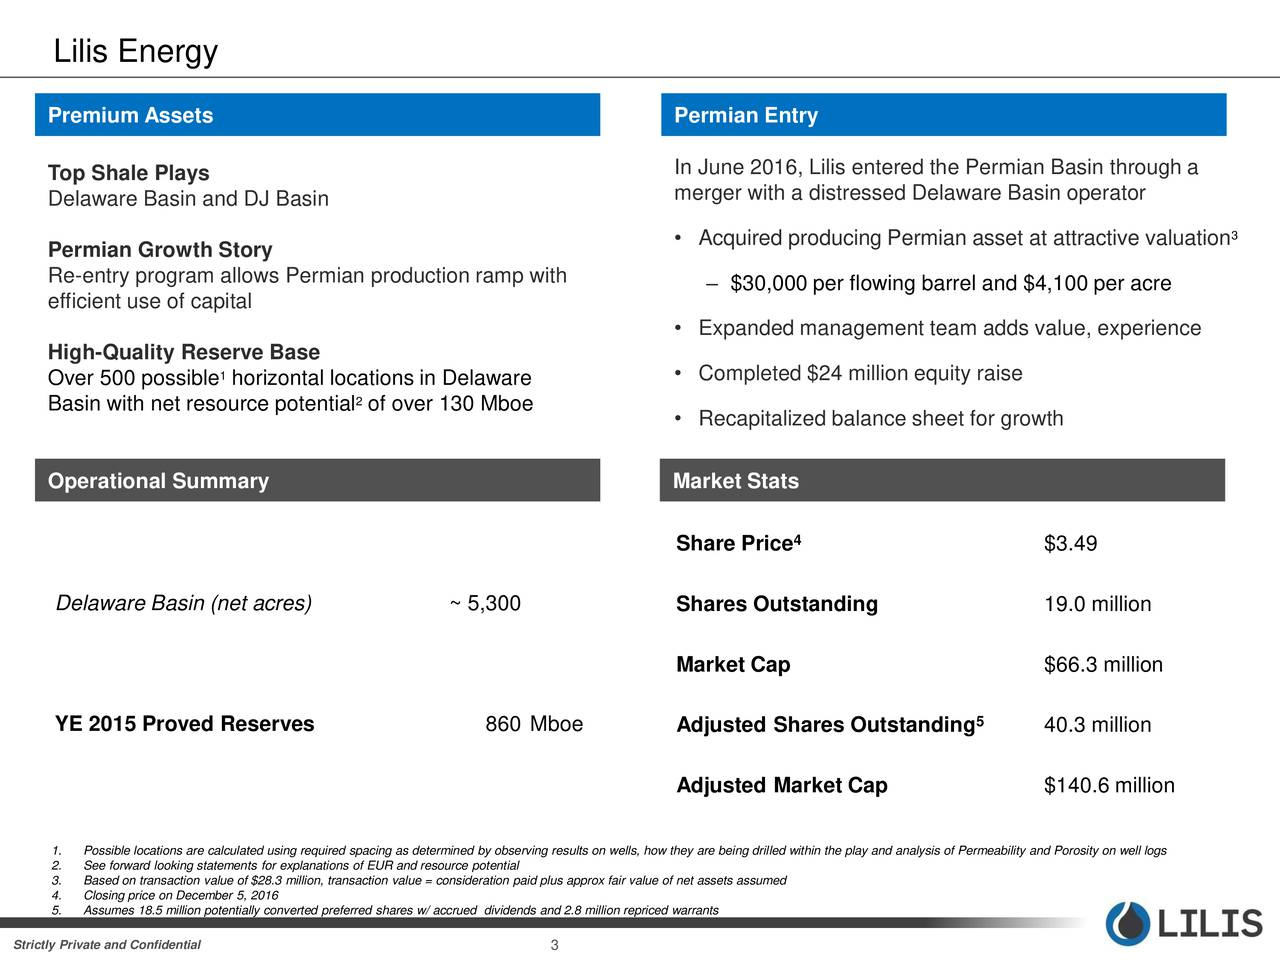 Premium Assets Permian Entry In June 2016, Lilis entered the Permian Basin through a Top Shale Plays Delaware Basin and DJ Basin merger with a distressed Delaware Basin operator Acquired producing Permian asset at attractive valuation 3 Permian Growth Story Re-entry program allows Permian production ramp with $30,000 per flowing barrel and $4,100 per acre efficient use of capital Expanded management team adds value, experience High-Quality Reserve Base Over 500 possible horizontal locations in Delaware  Completed $24 million equity raise Basin with net resource potential of over 130 Mboe Recapitalized balance sheet for growth Operational Summary Market Stats Share Price 4 $3.49 Delaware Basin (net acres) ~ 5,300 Shares Outstanding 19.0 million Market Cap $66.3 million 5 YE 2015 Proved Reserves 860 Mboe Adjusted Shares Outstanding 40.3 million Adjusted Market Cap $140.6 million 1. Possible locations are calculated using required spacing as determined by observing results on wells, how they are being drilled within the play and analysis of Permeability and Porosity on well logs 2. See forward looking statements for explanations of EUR and resource potential 3. Based on transaction value of $28.3 million, transaction value = consideration paid plus approx fair value of net assets assumed 4. Closing price on December 5, 2016 5. Assumes 18.5 million potentially converted preferred shares w/ accrued dividends and 2.8 million repriced warrants Strictly Private and Confidential 3